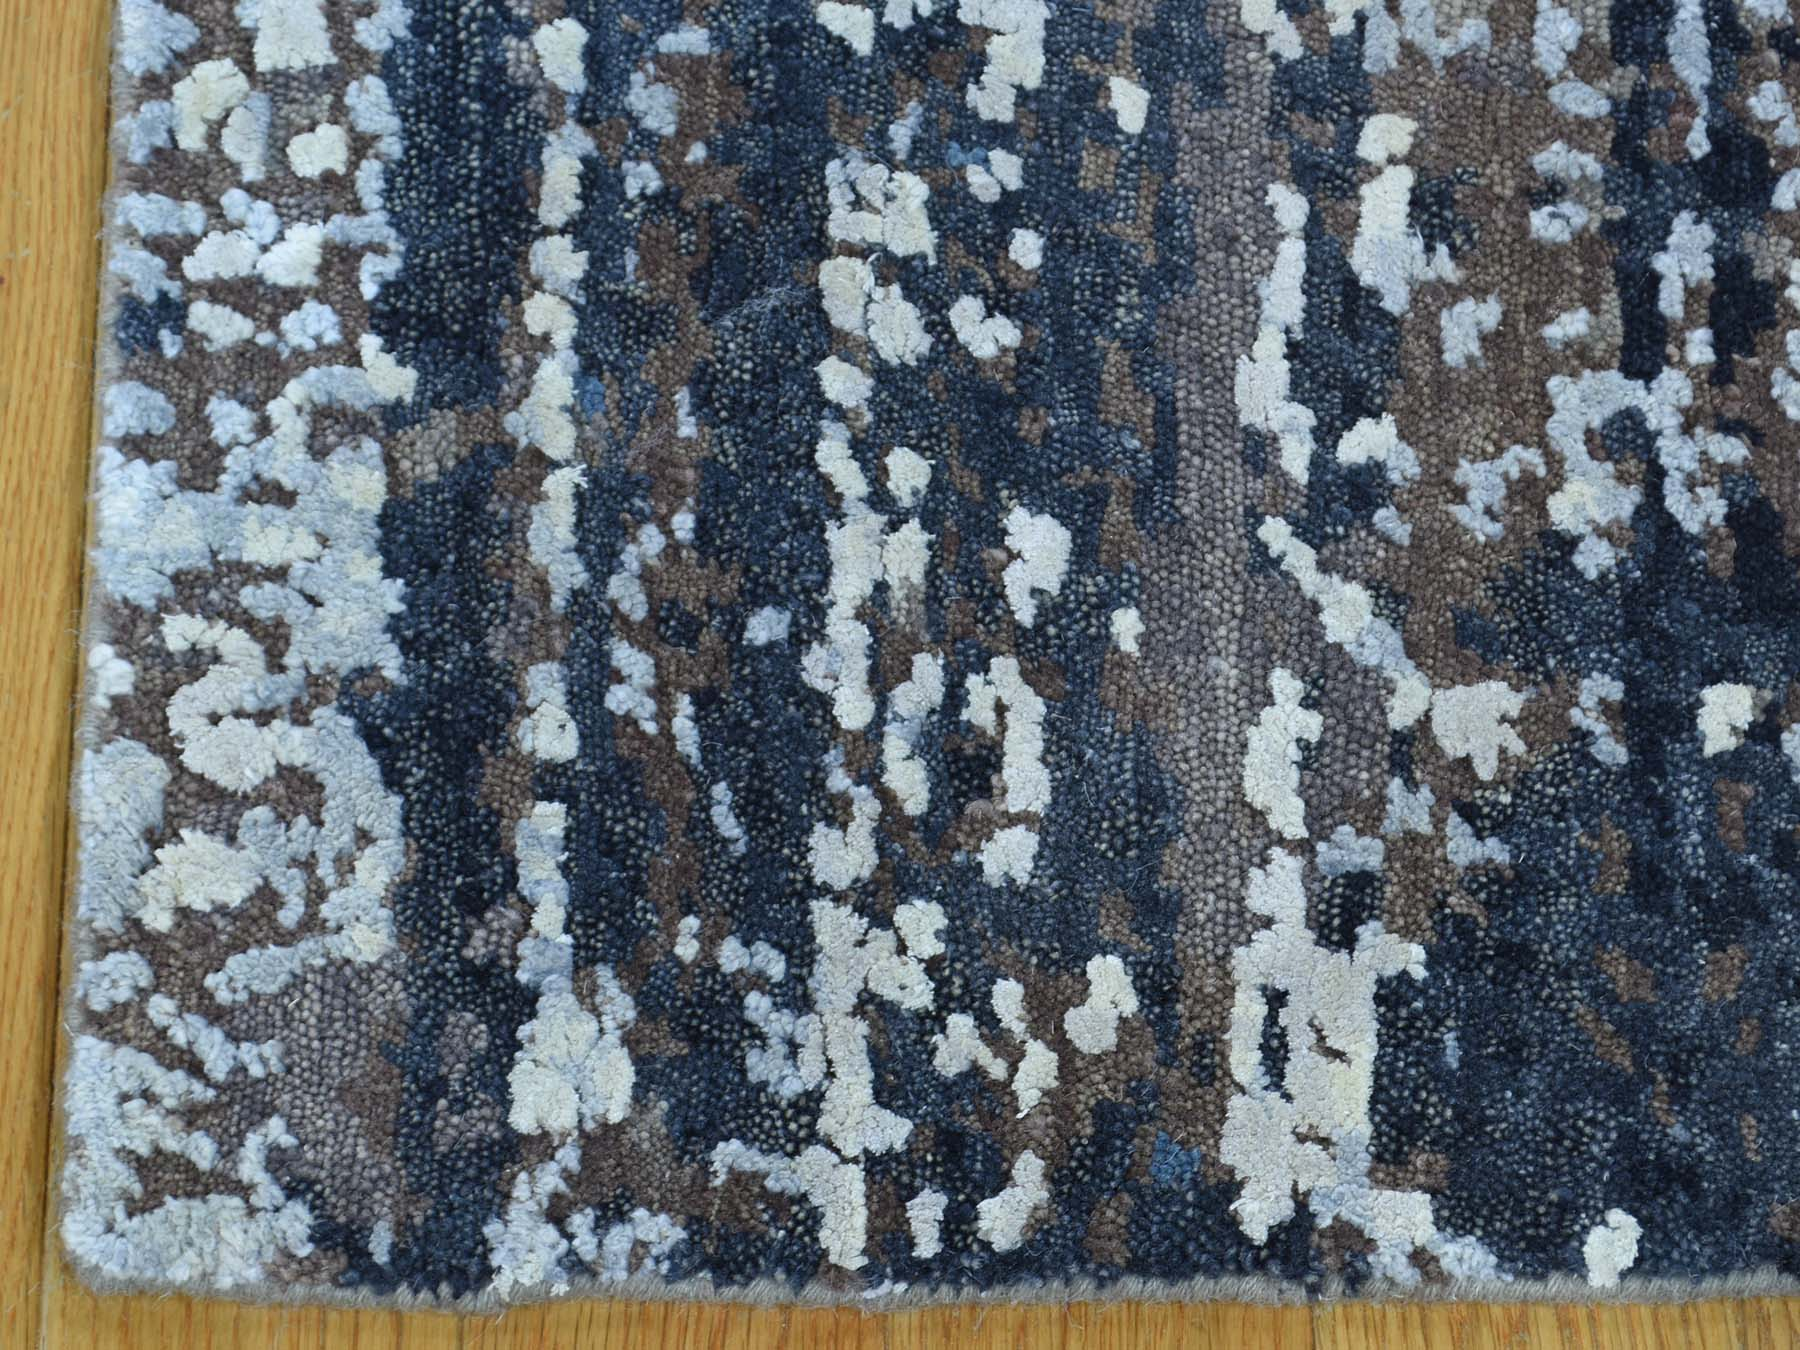 1-10 x2- Hand-Knotted Wool and Silk Abstract Square Hi and Low Pile Rug